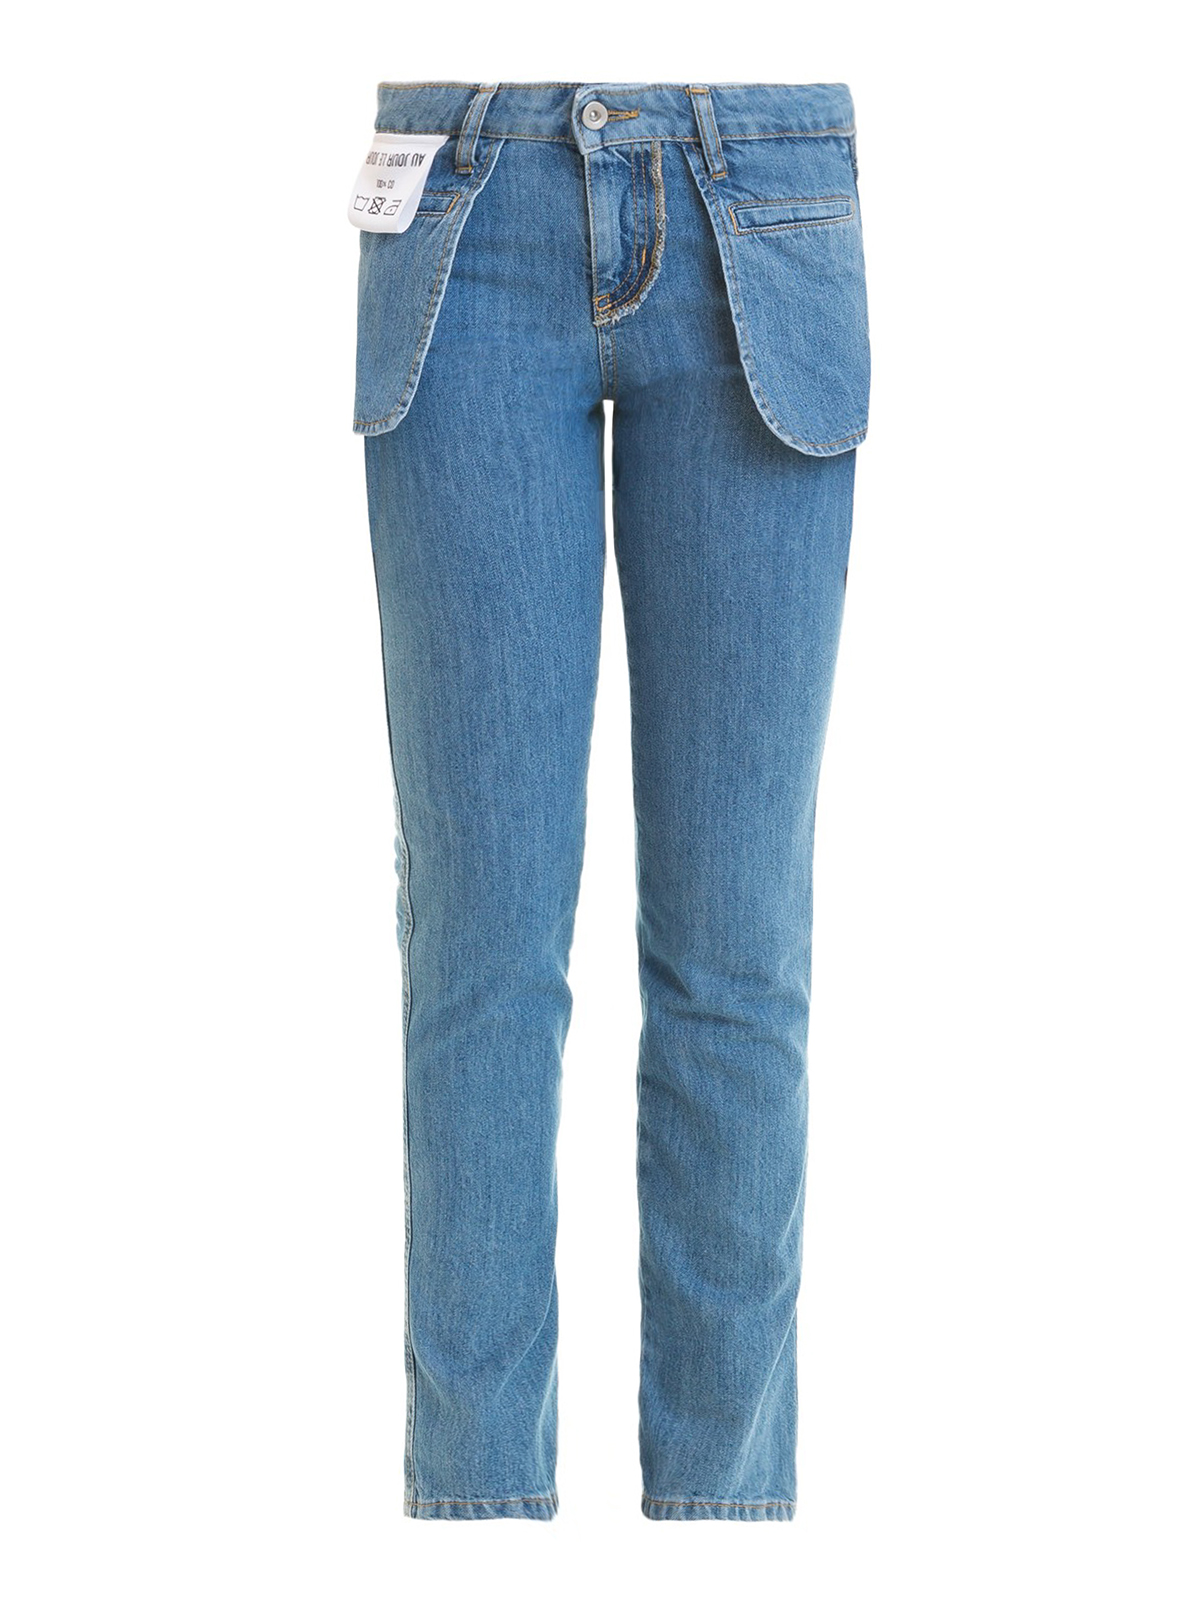 6618bf51ced au-jour-le-jour-skinny-jeans-inside-out-pocket-jeans-00000146528f00s001.jpg